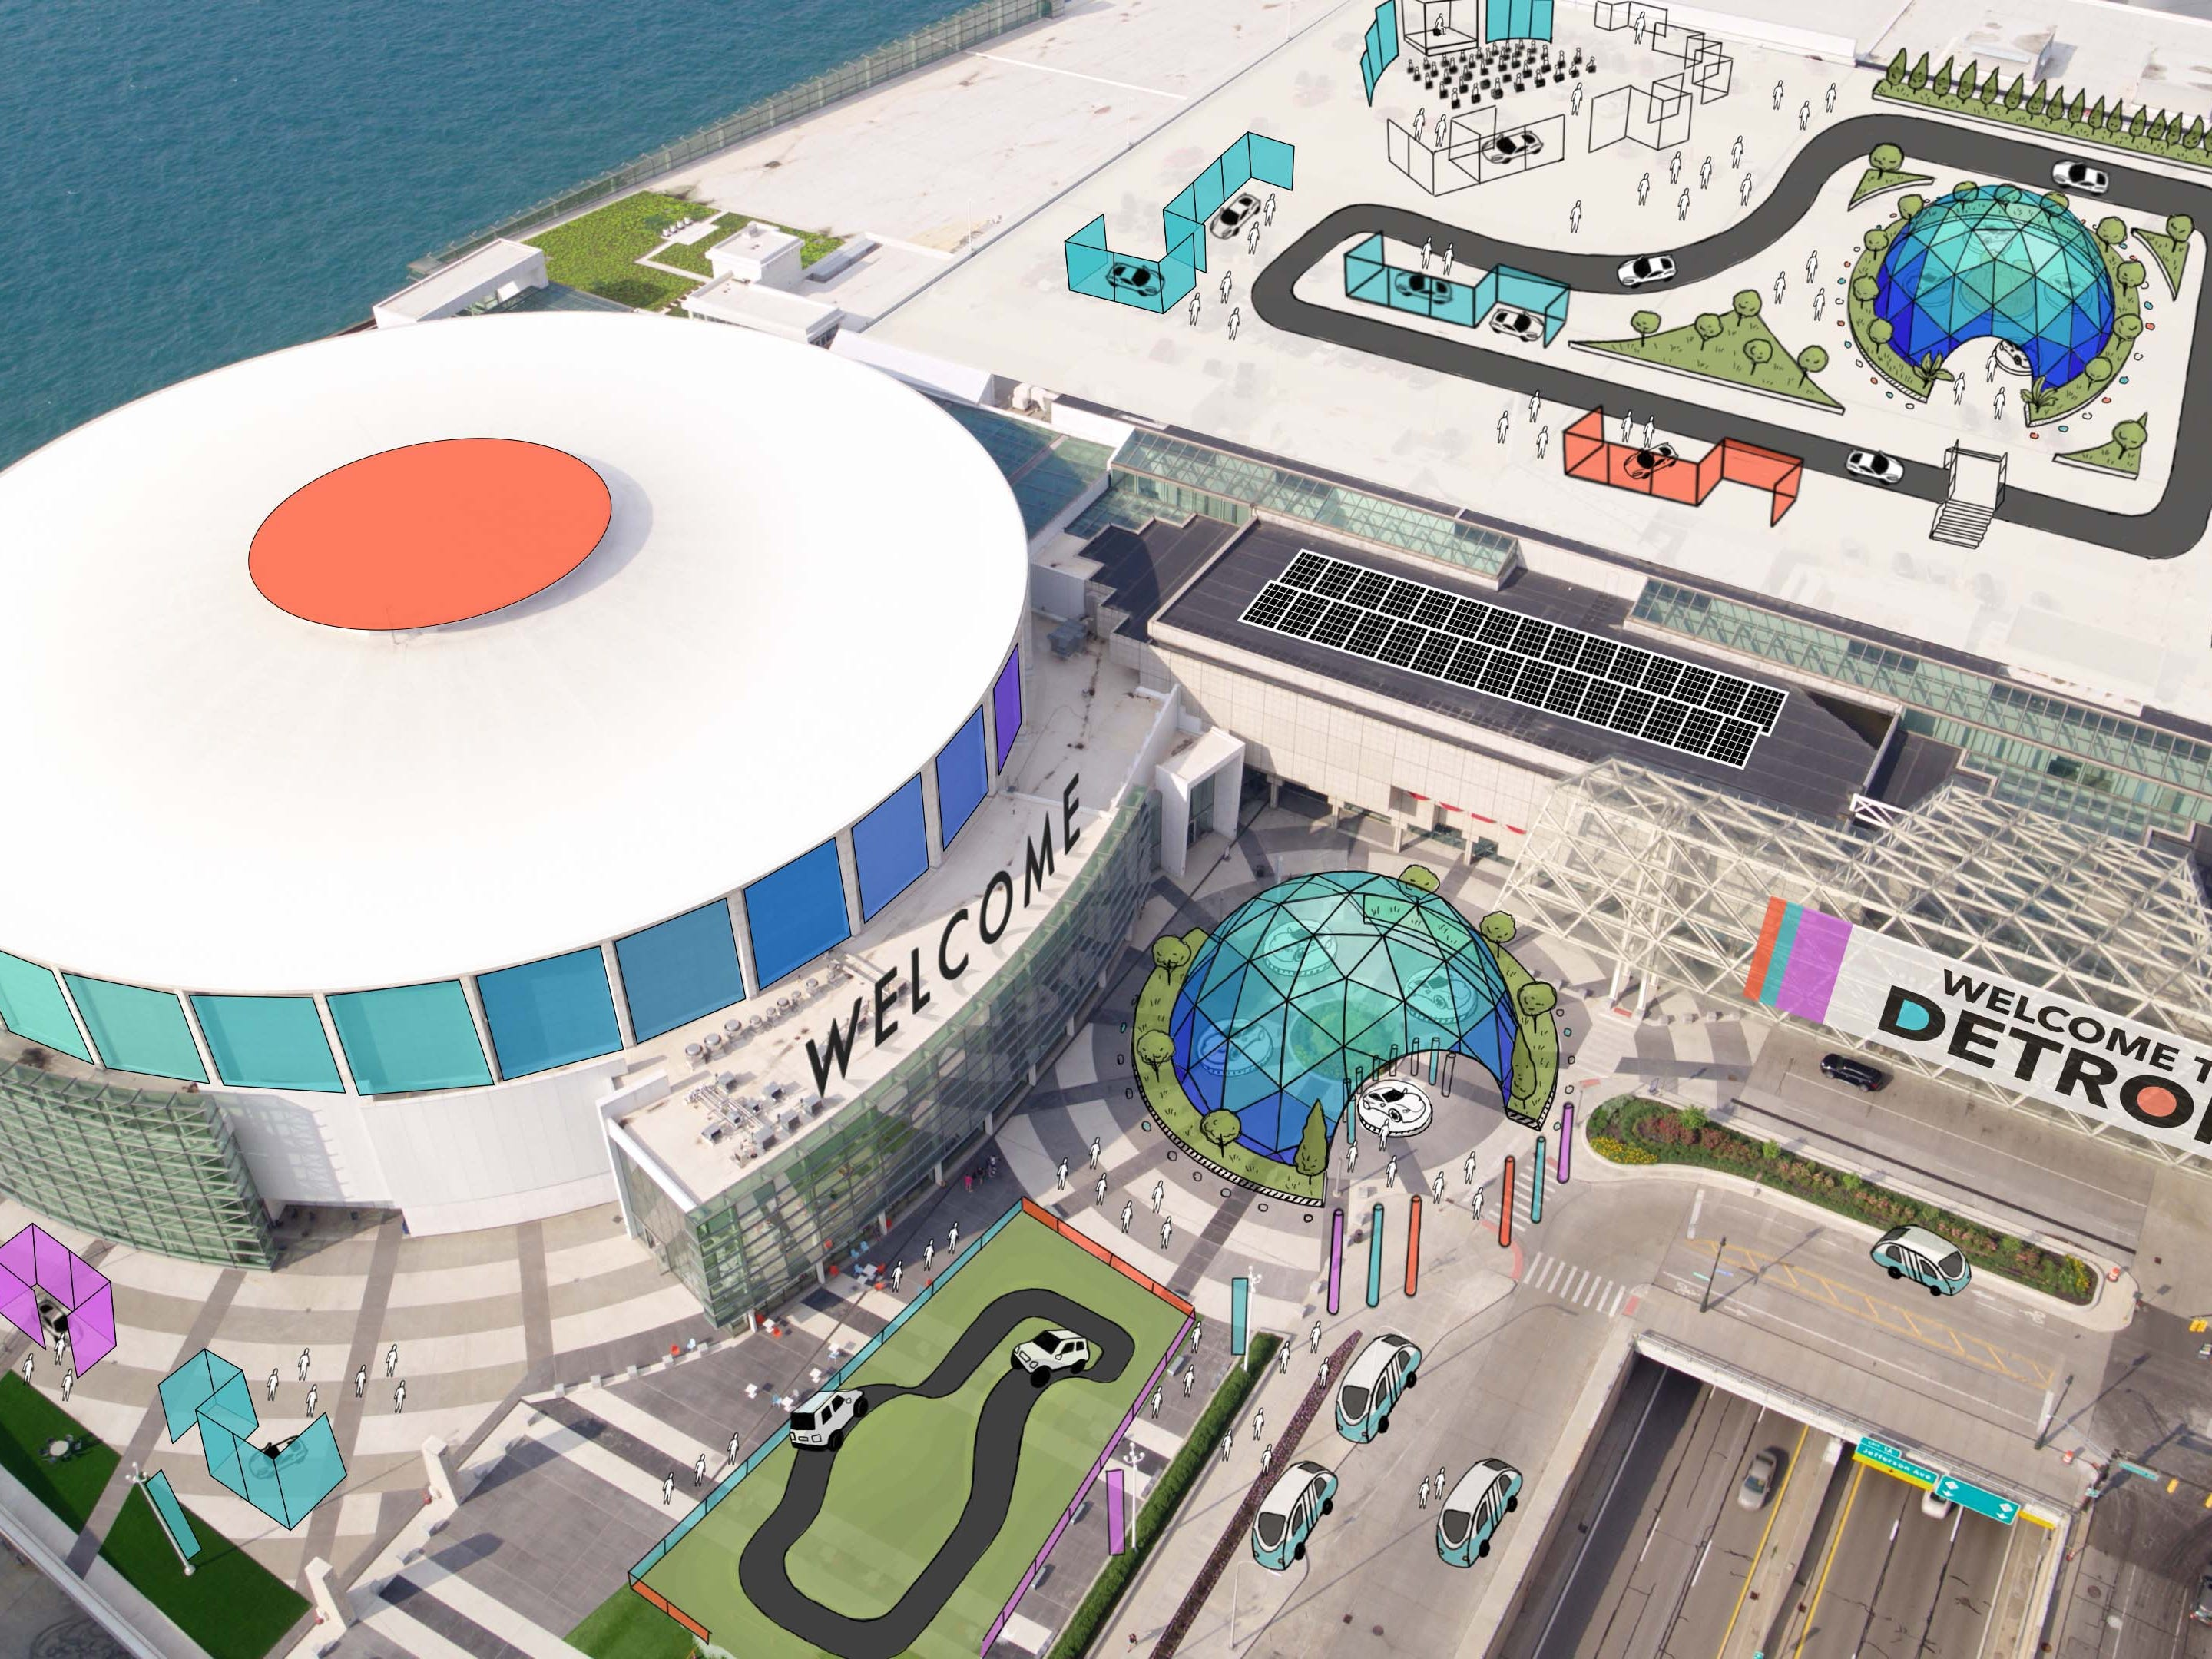 Traditionally used for parking, the Cobo roof may become a venue for entertainment and other displays at the June, 2020 Detroit Auto Show.